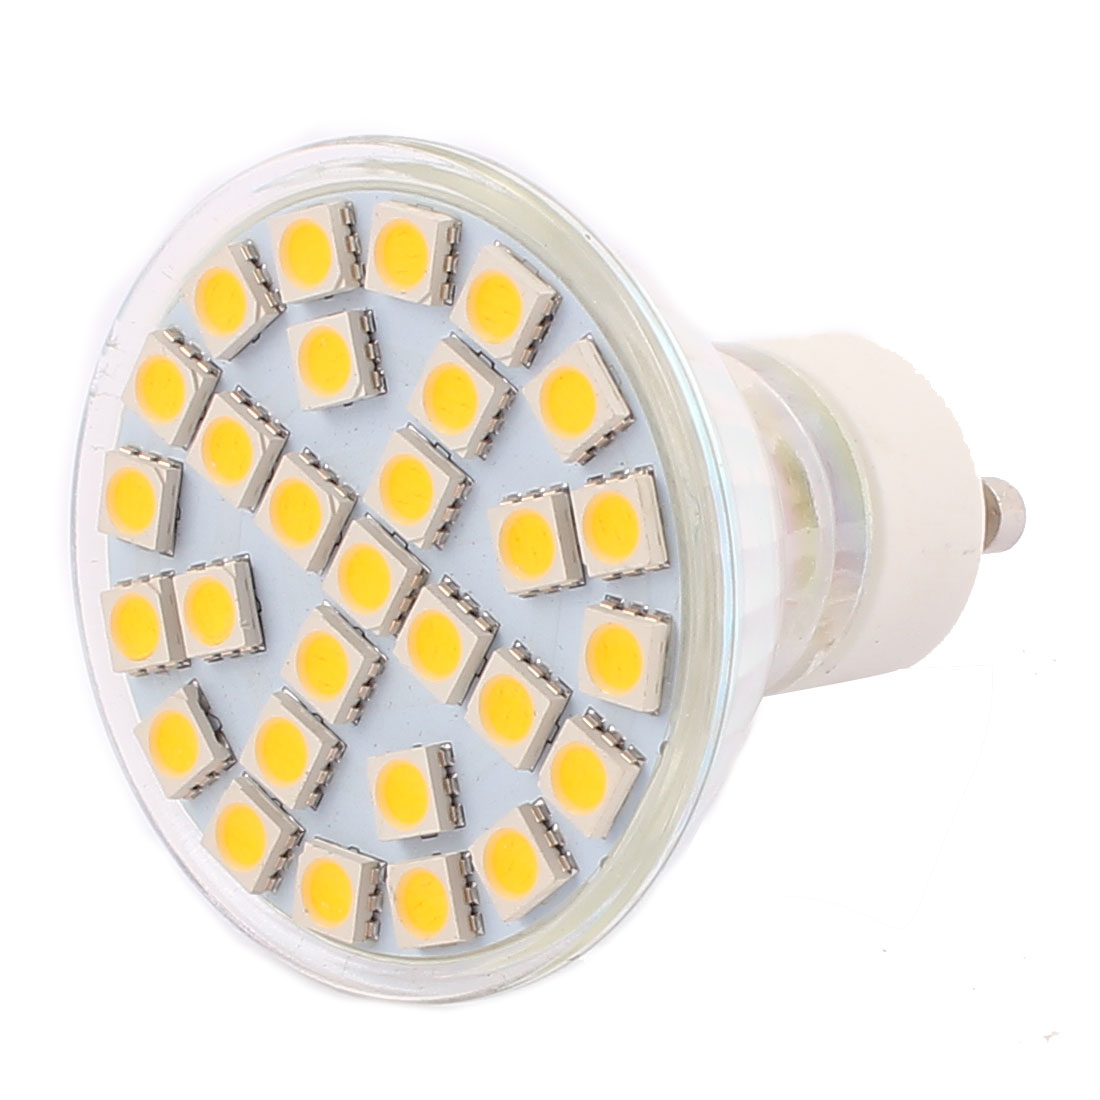 GU10 SMD5050 29LEDs AC 110V 5W Glass Energy Saving LED Lamp Bulb Warm White